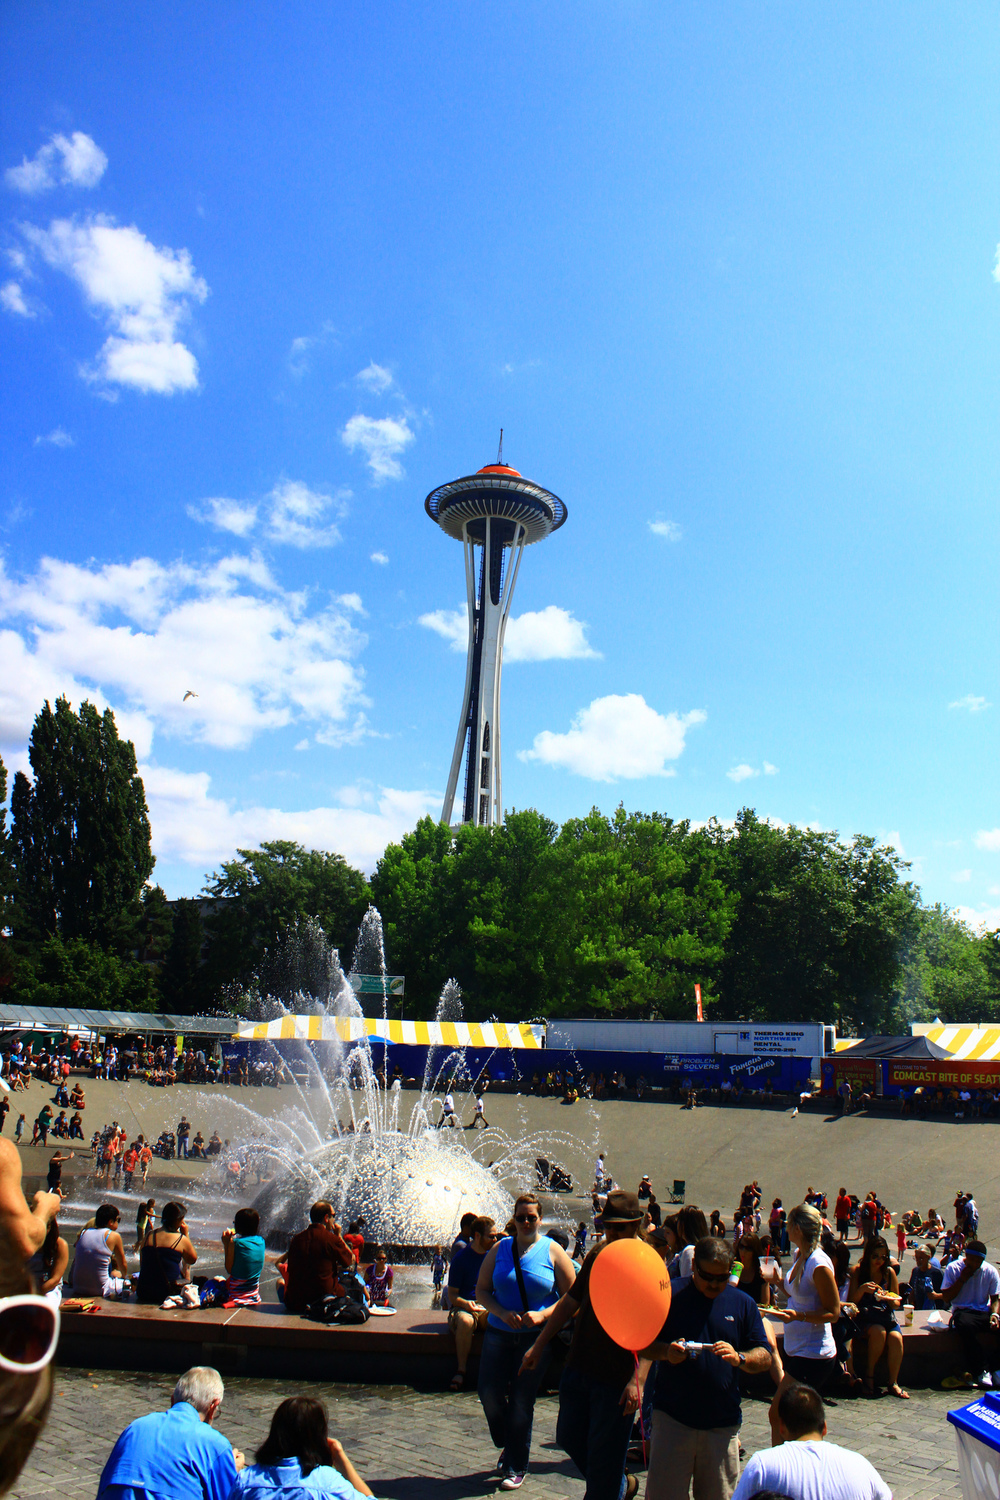 """International Fountain at Seattle Center,"" by Bradley Gordan. Licensed under Attribution 2.0 Generic (CC BY 2.0)."